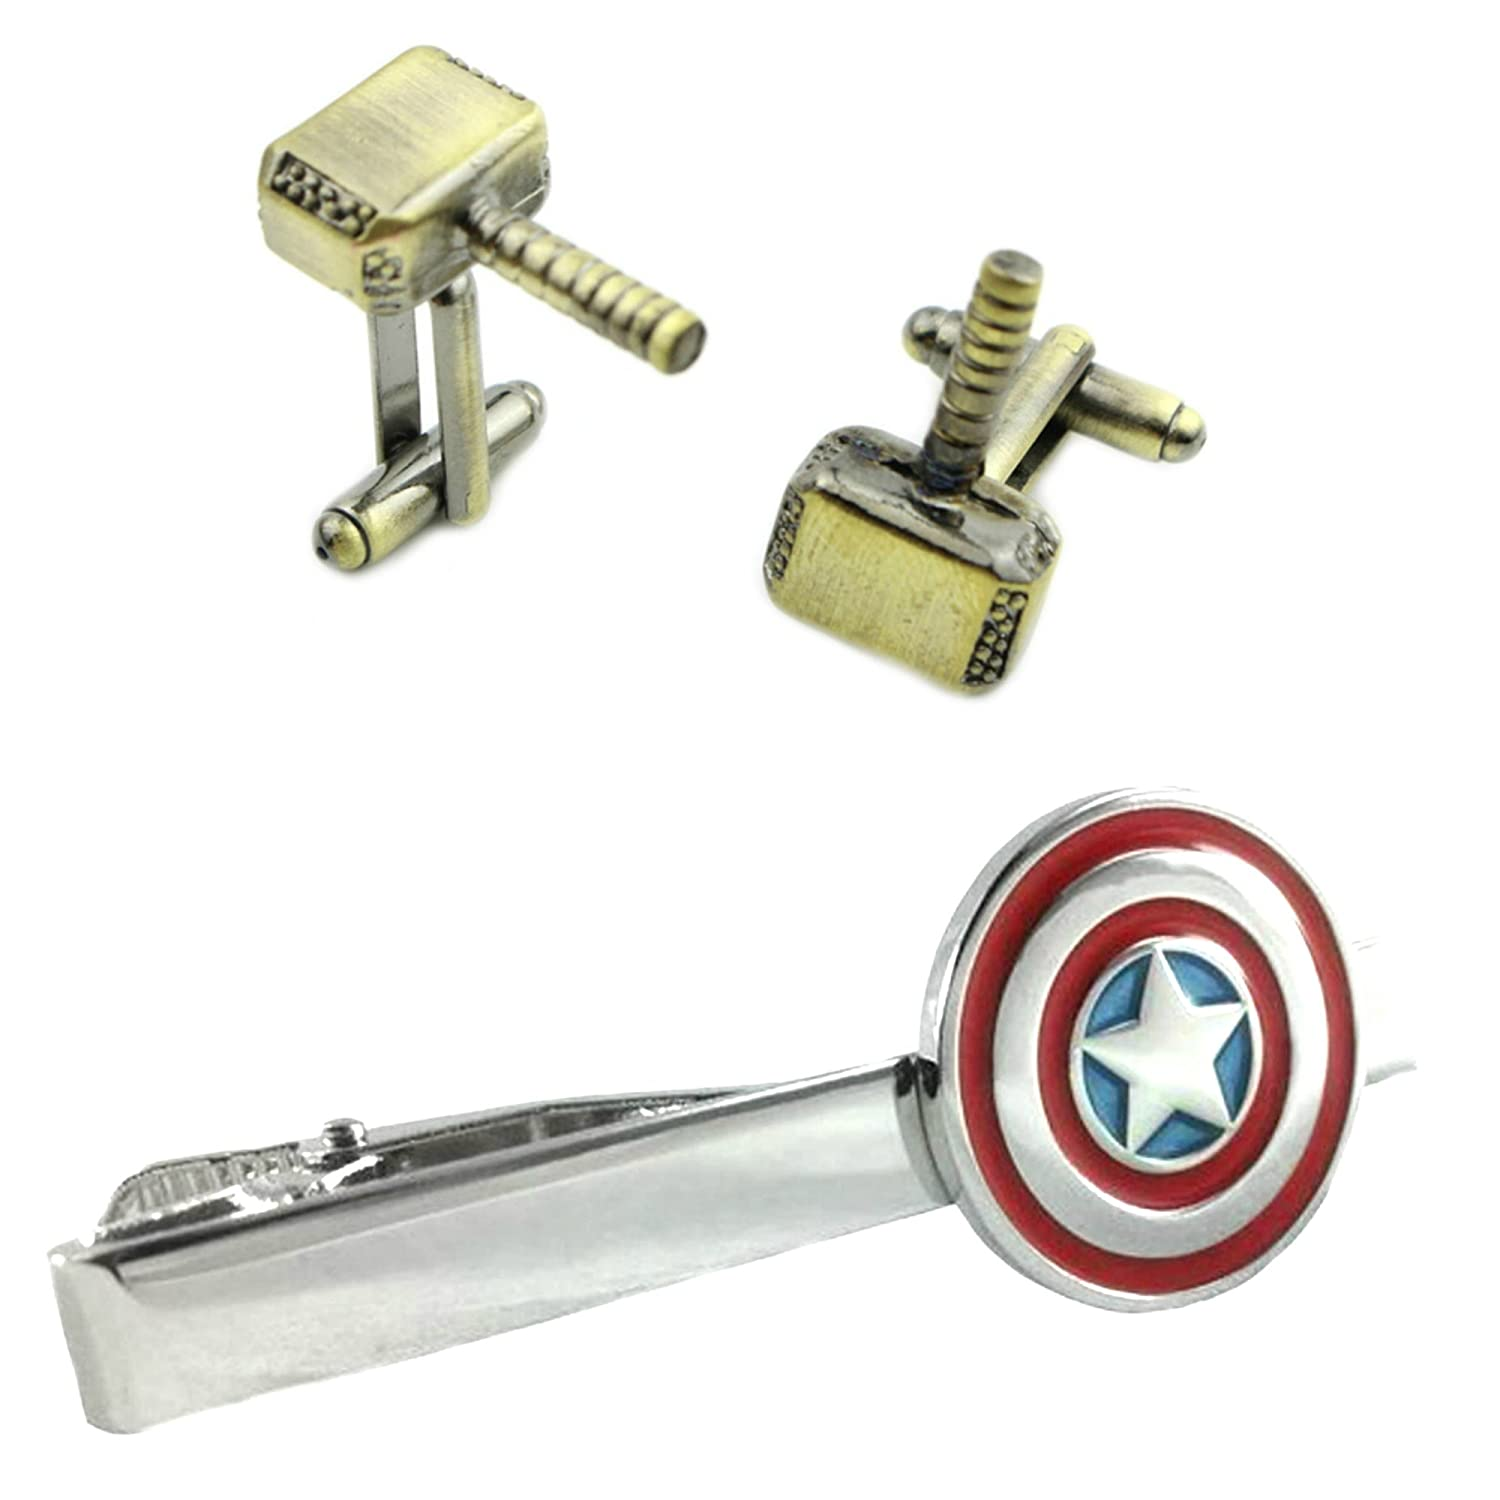 Outlander Thor Bronze Cufflink & Captain America Tiebar - New 2018 Marvel Studios Superhero Movies - Set of 2 Wedding Logo w/Gift Box Outlander Brand